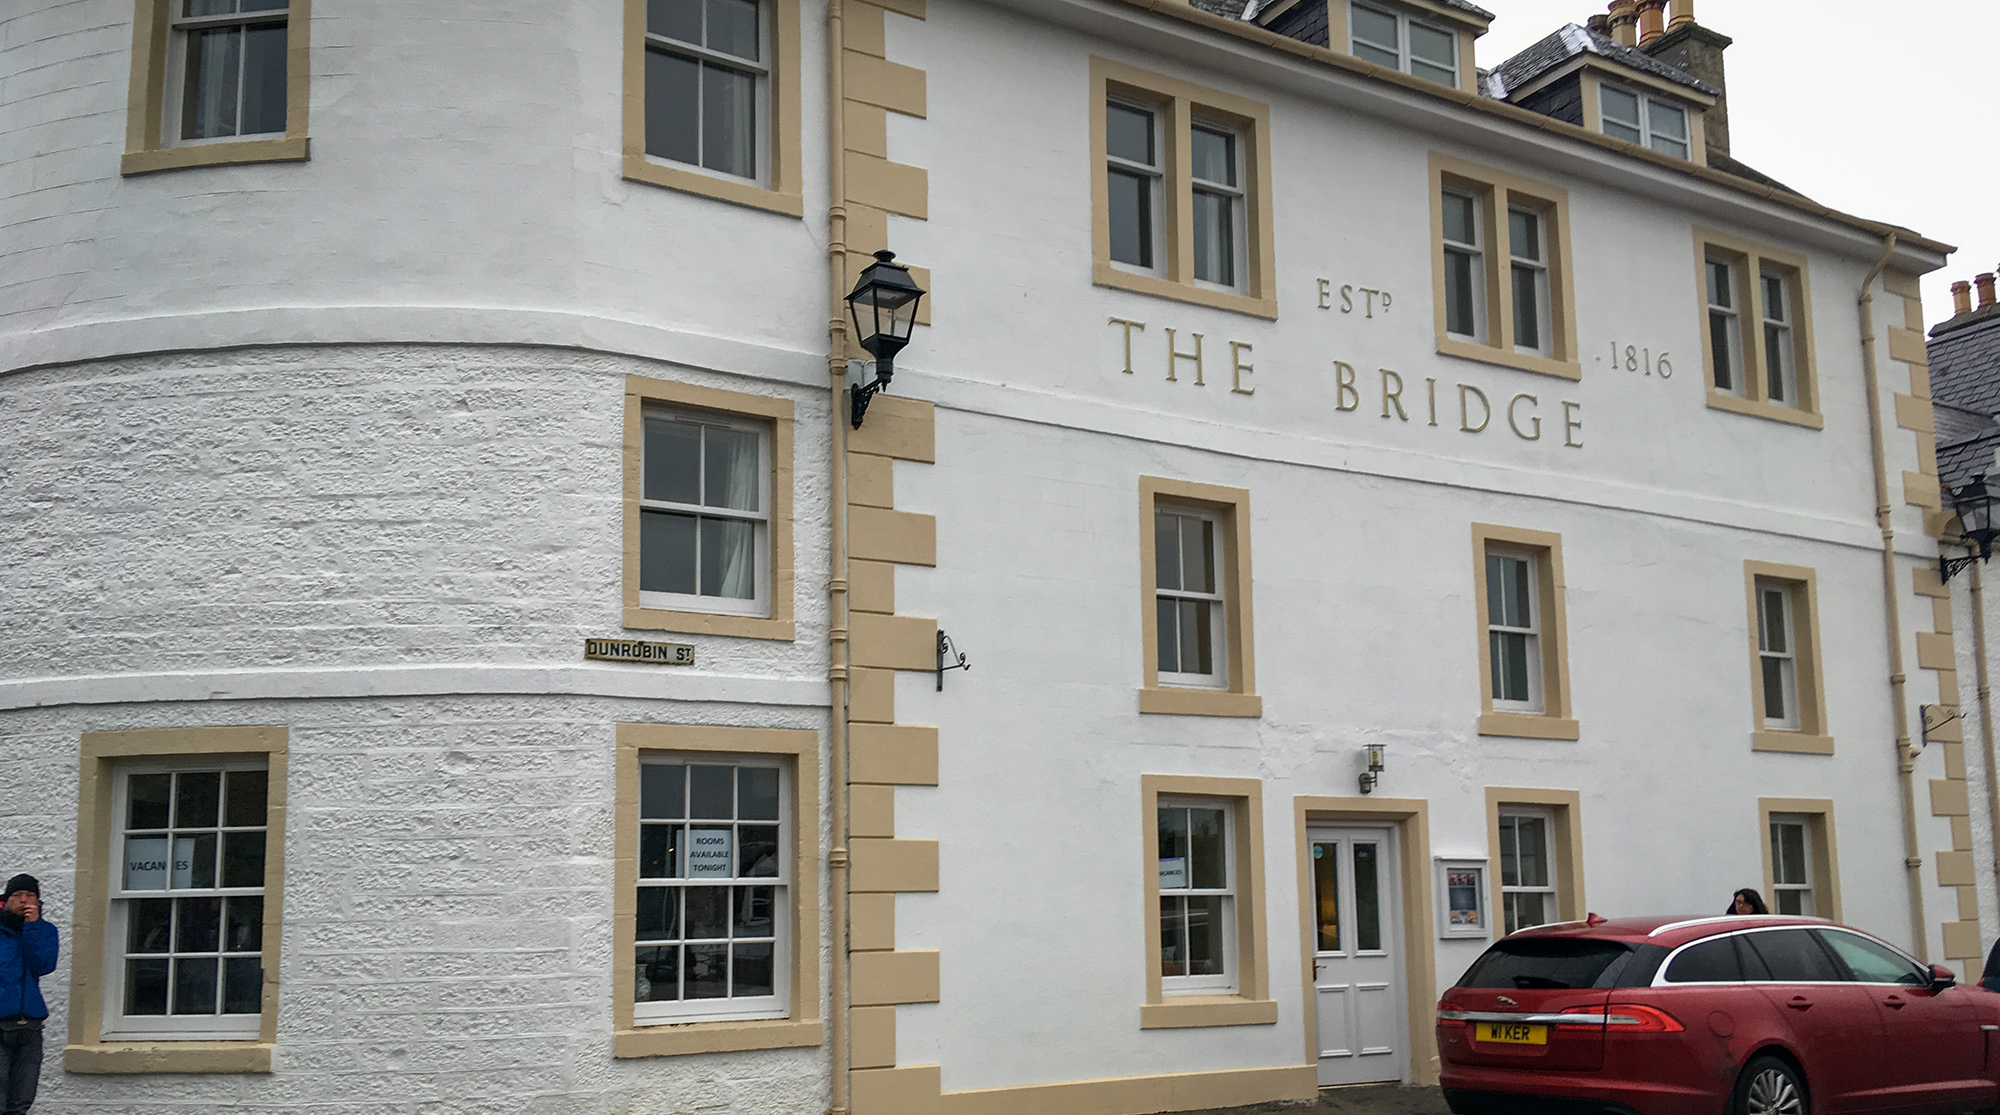 B&B The Bridge in Helmsdale mit PKW davor